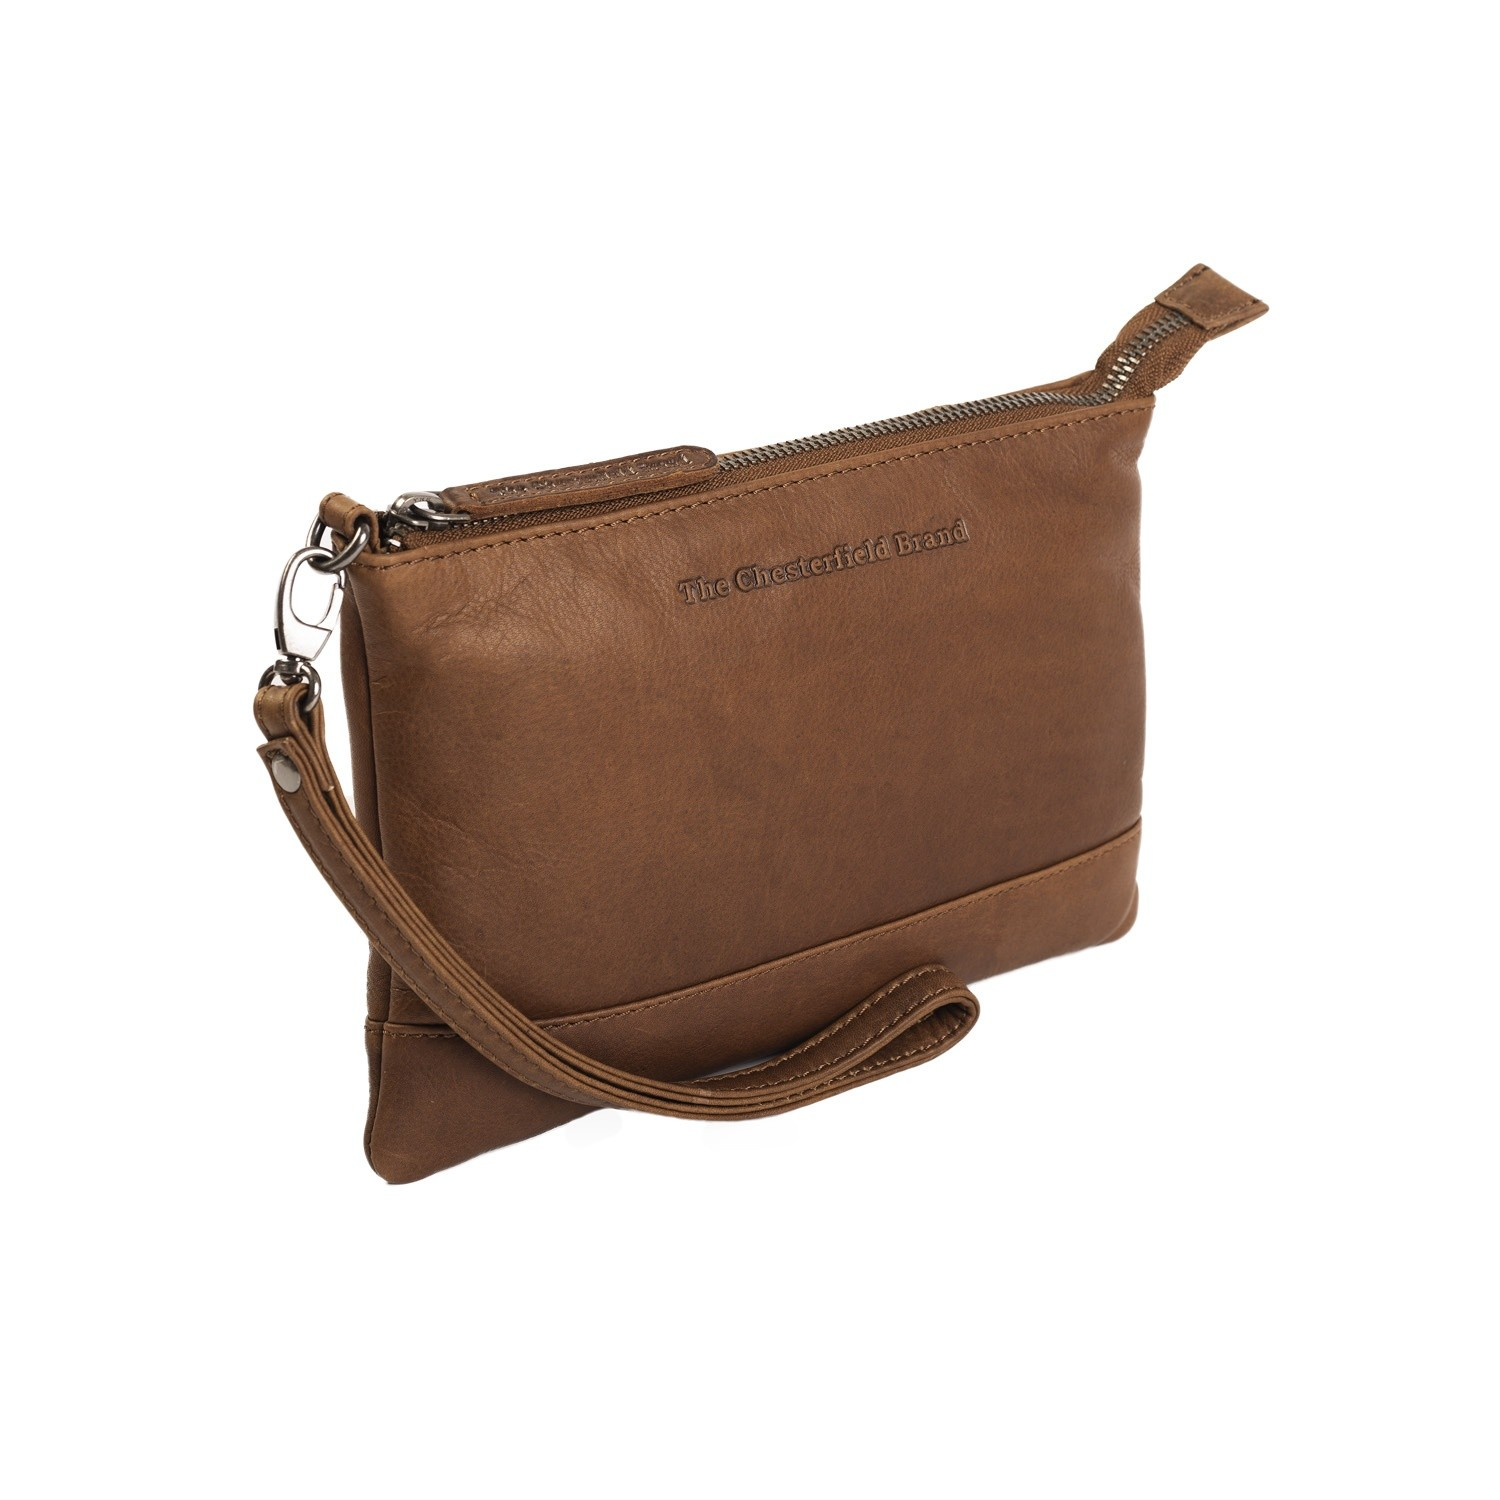 Bilde av Chesterfield Leather Clutch Cognac Sue